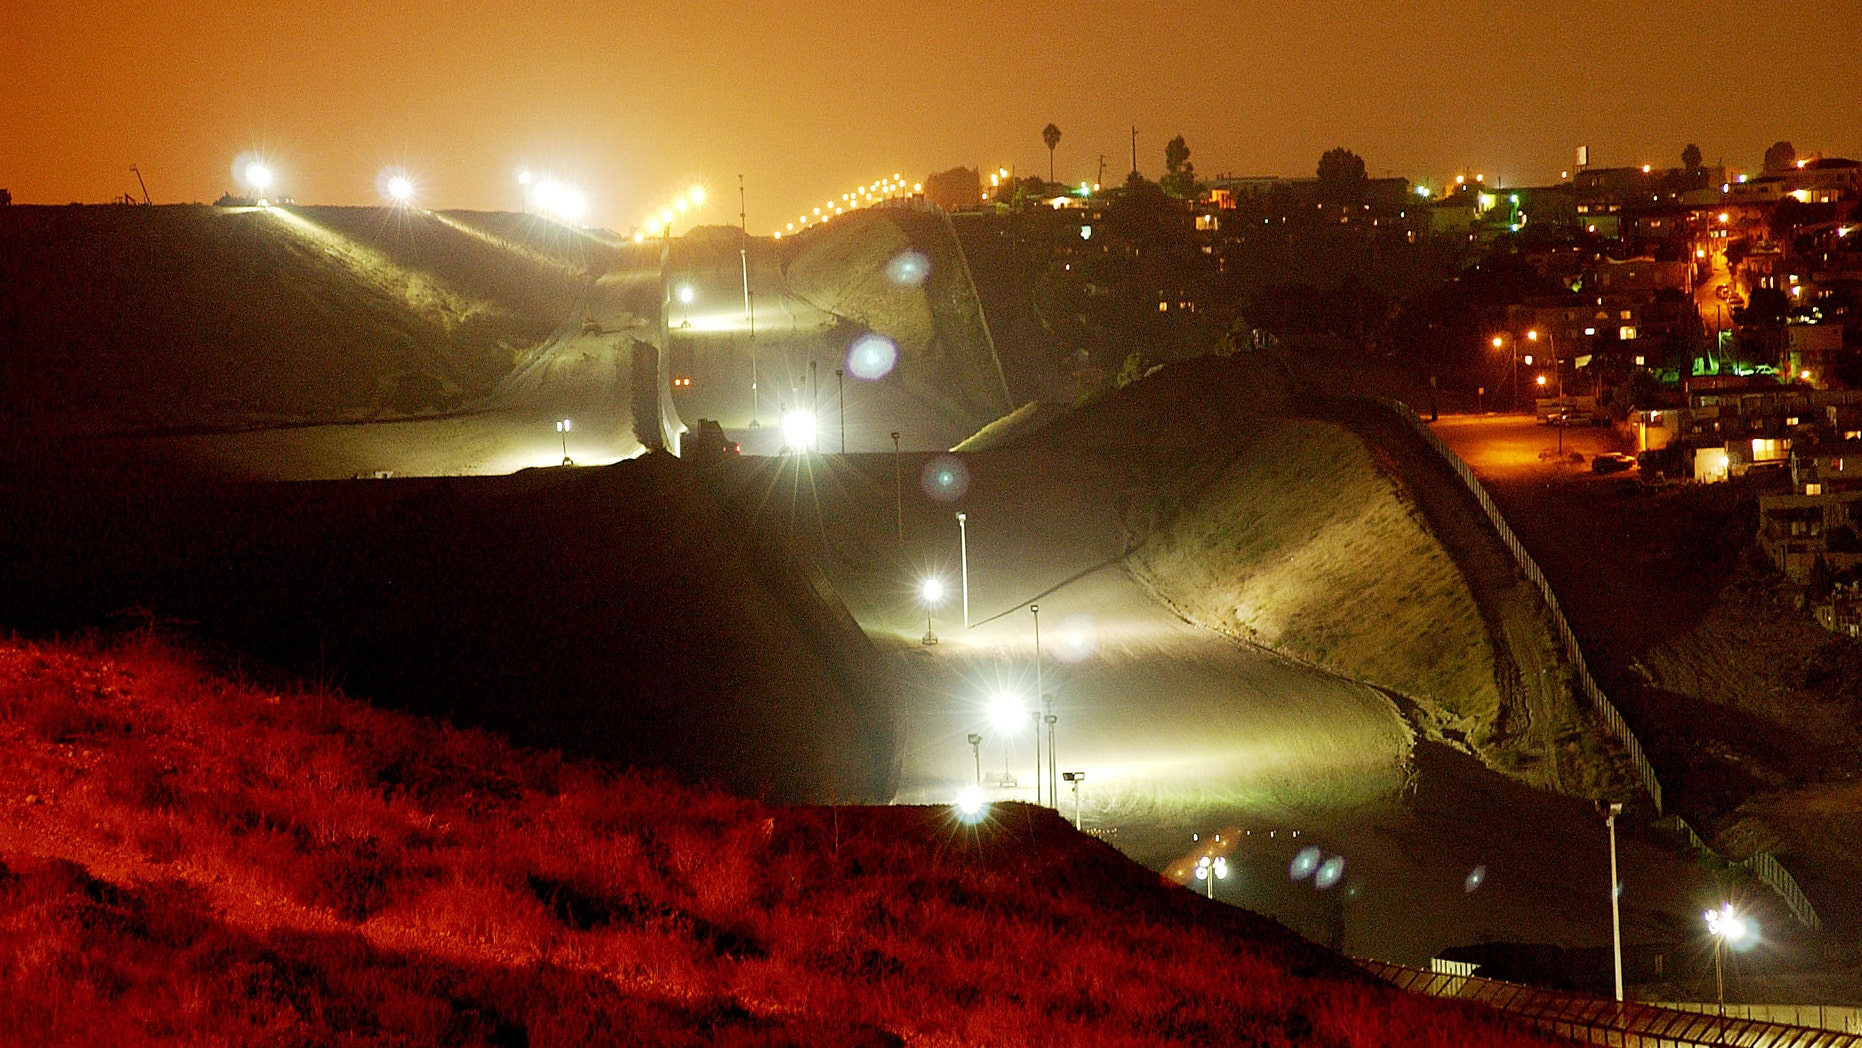 394677 03: Lights, fences, and barren land create an erie no man's land between the Tijuana, Mexico neighborhood of Colonia Libertad (R) and the U.S., September 19, 2001 east of San Ysidro, CA. Operation Gatekeeper's border crackdown of recent years has created the prison-like appearance and has made the border easier to defend against possible terrorist crossings. (Photo by David McNew/Getty Images)